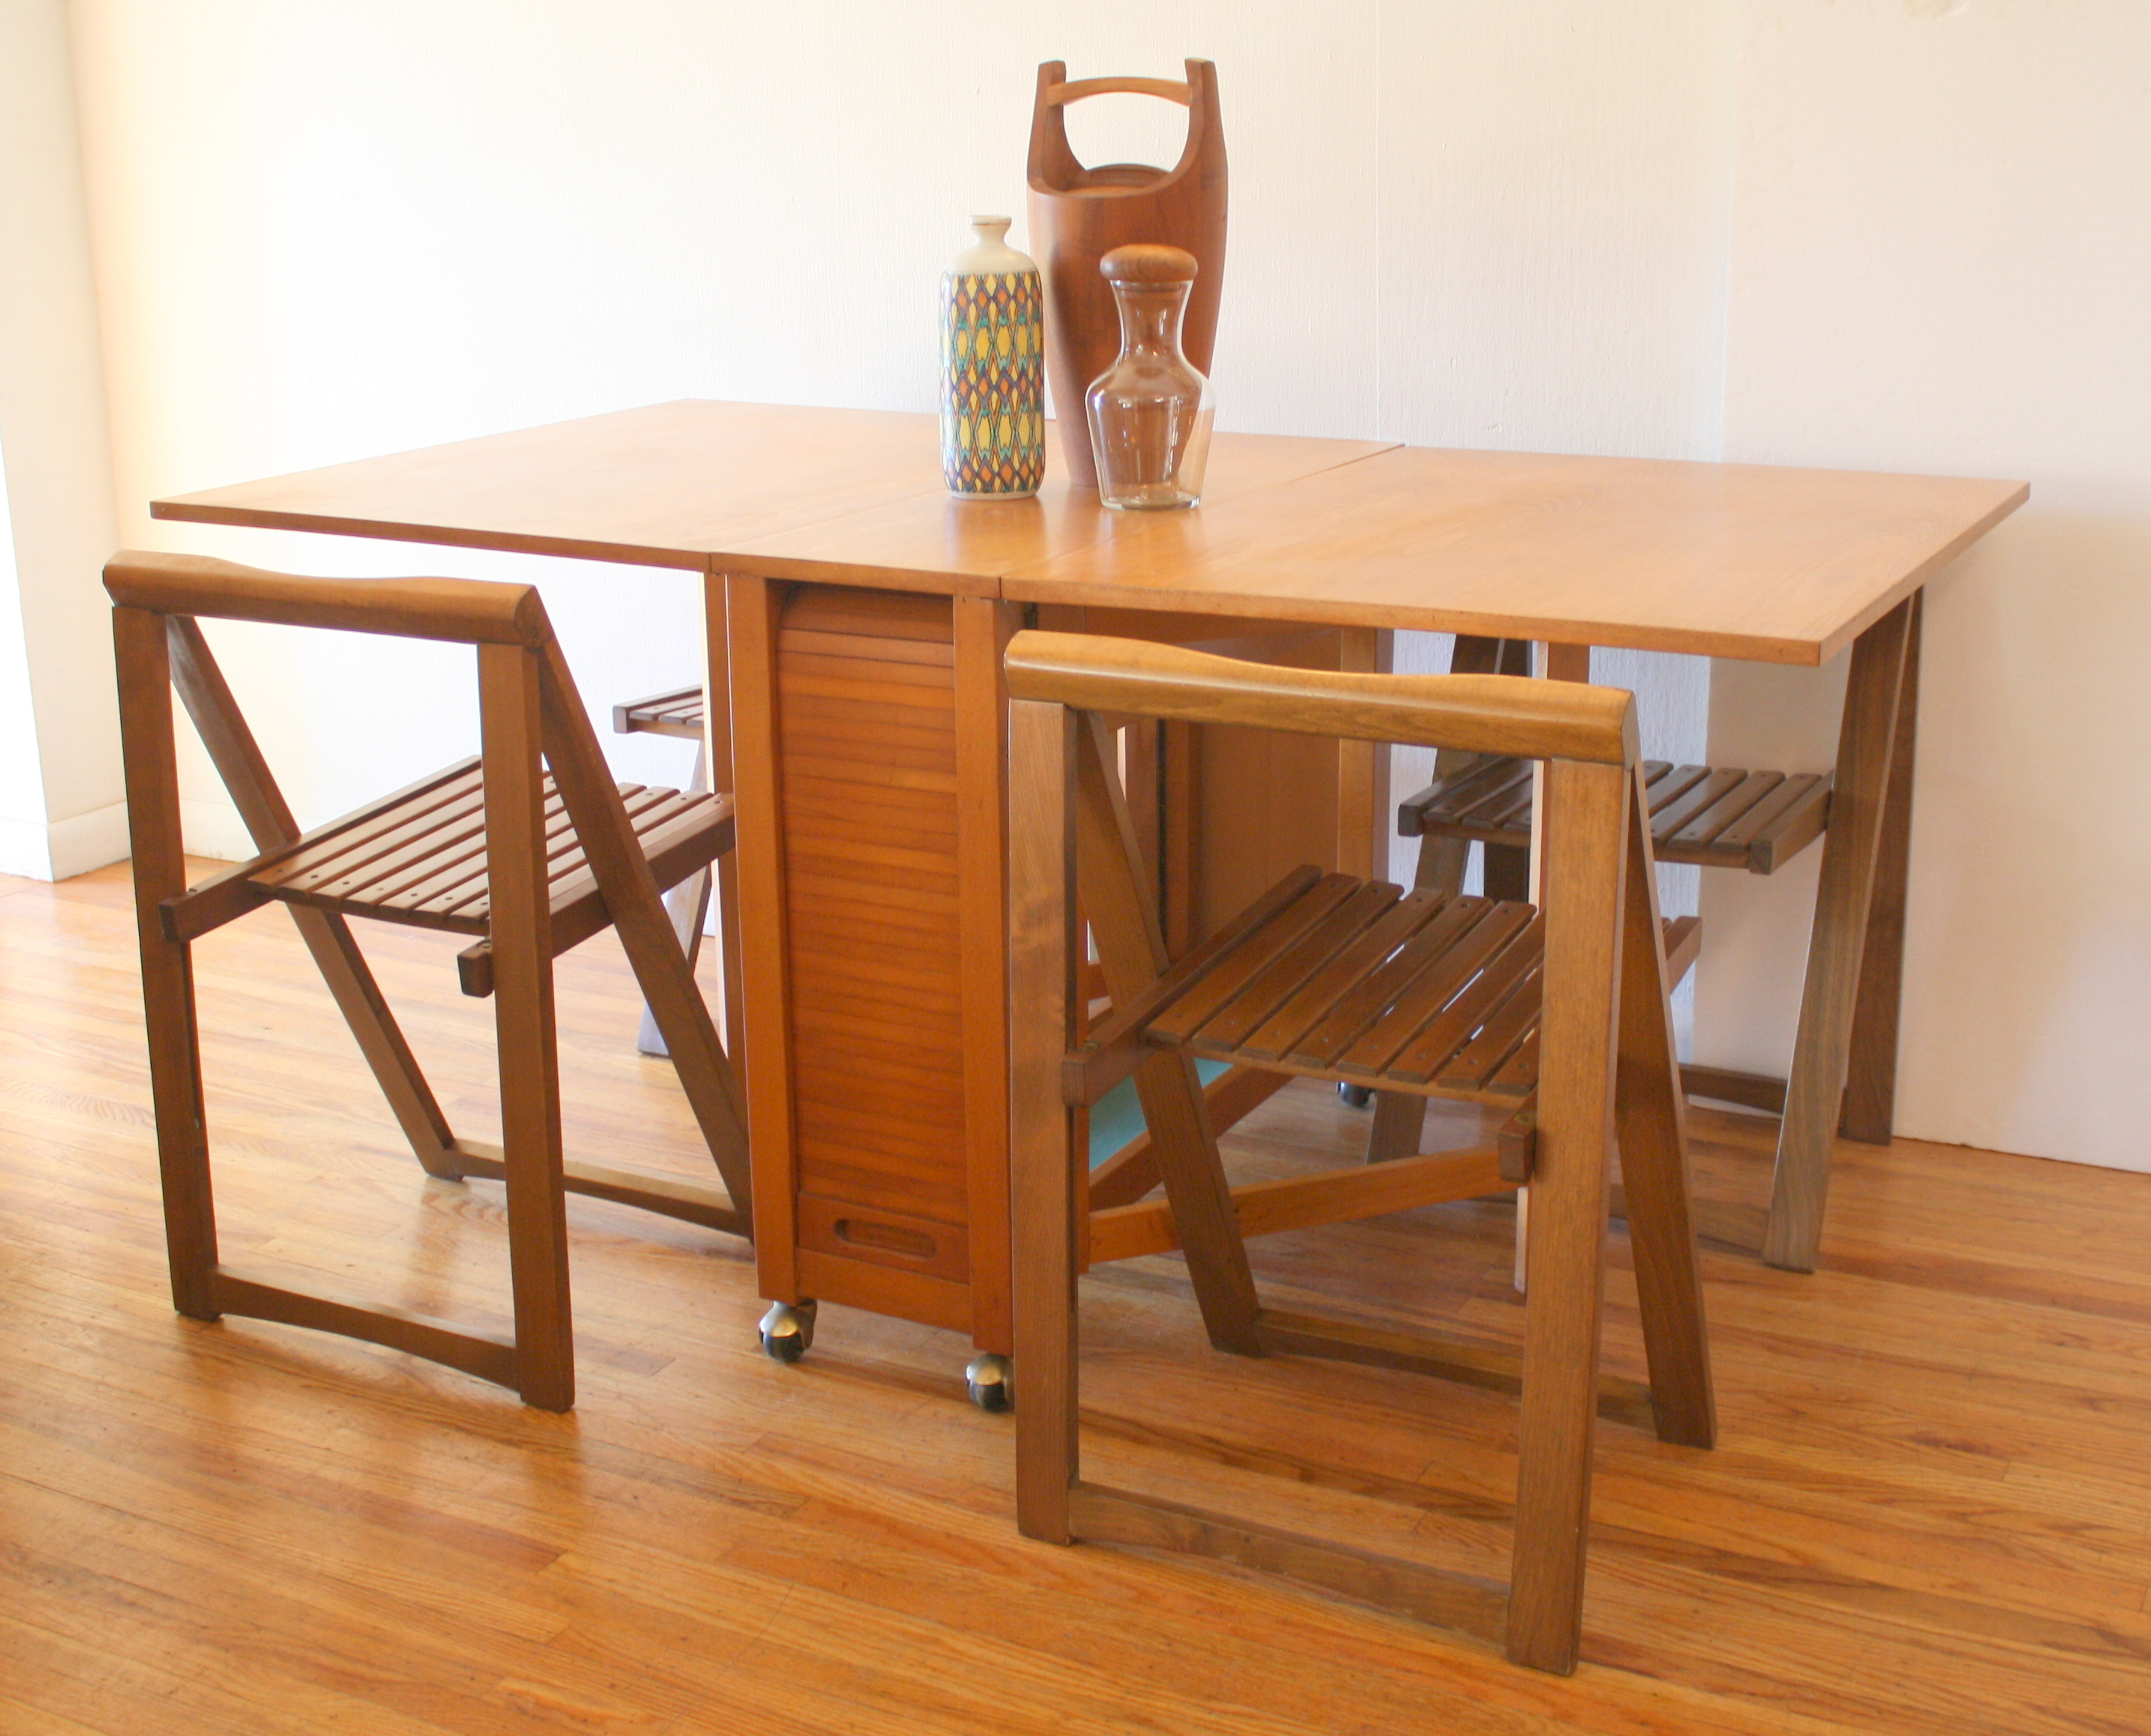 gateleg dining table with chairs 1.JPG